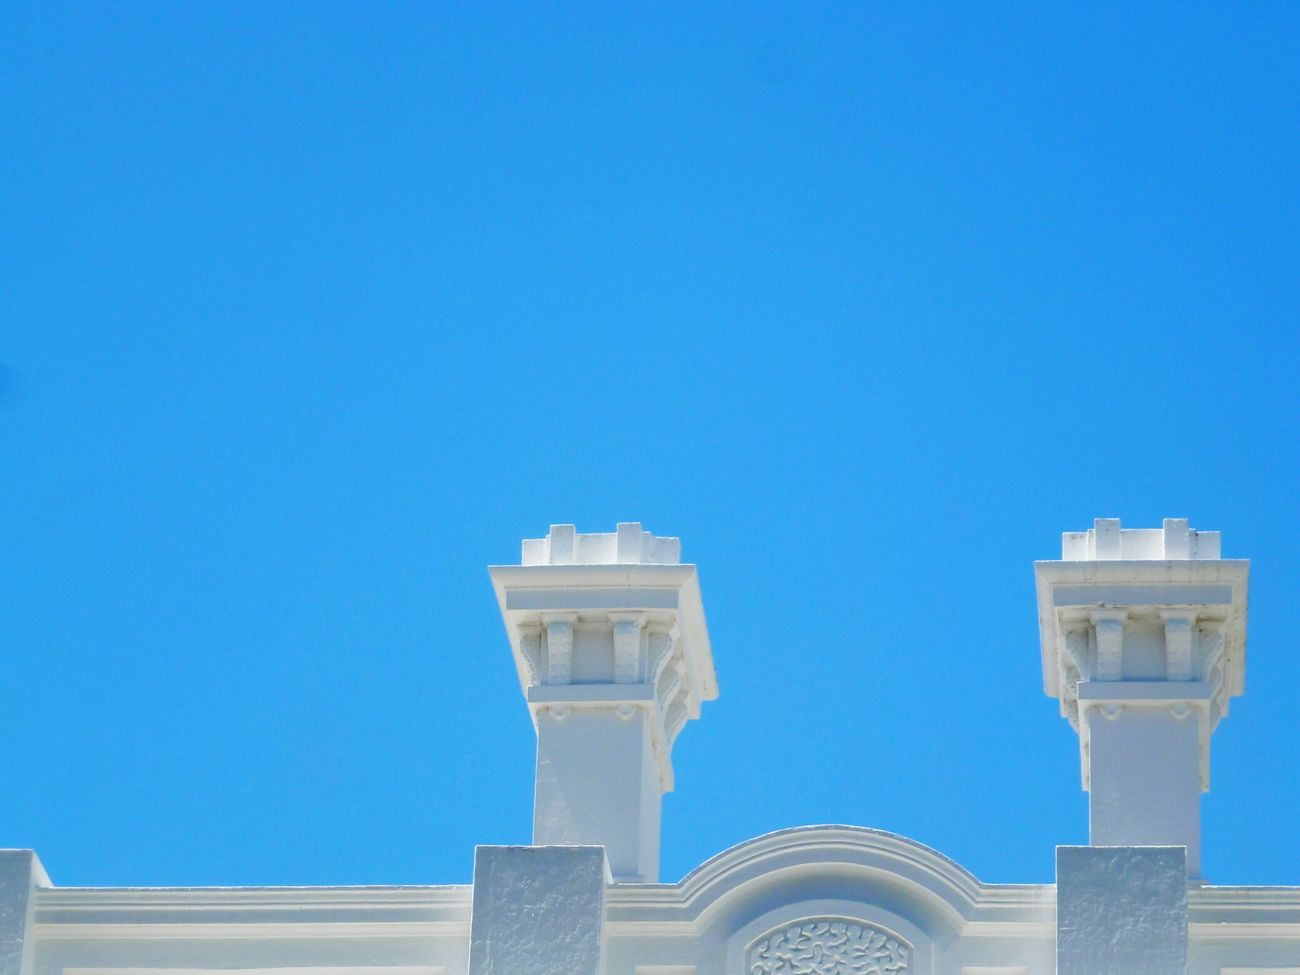 Blue Sky Memories Blue Sky Architectural Detail Architecture Arcitecturephotography Blue Cape Town Urban Geometry Architectural Details Fine Art Photography Fine Art Urban Escape Facades Geometric Shapes Geometric Lines Urban Exploration Lines And Shapes Urban Architecture Geometric Architecture Geometry Architecture Facade Architecture Photography